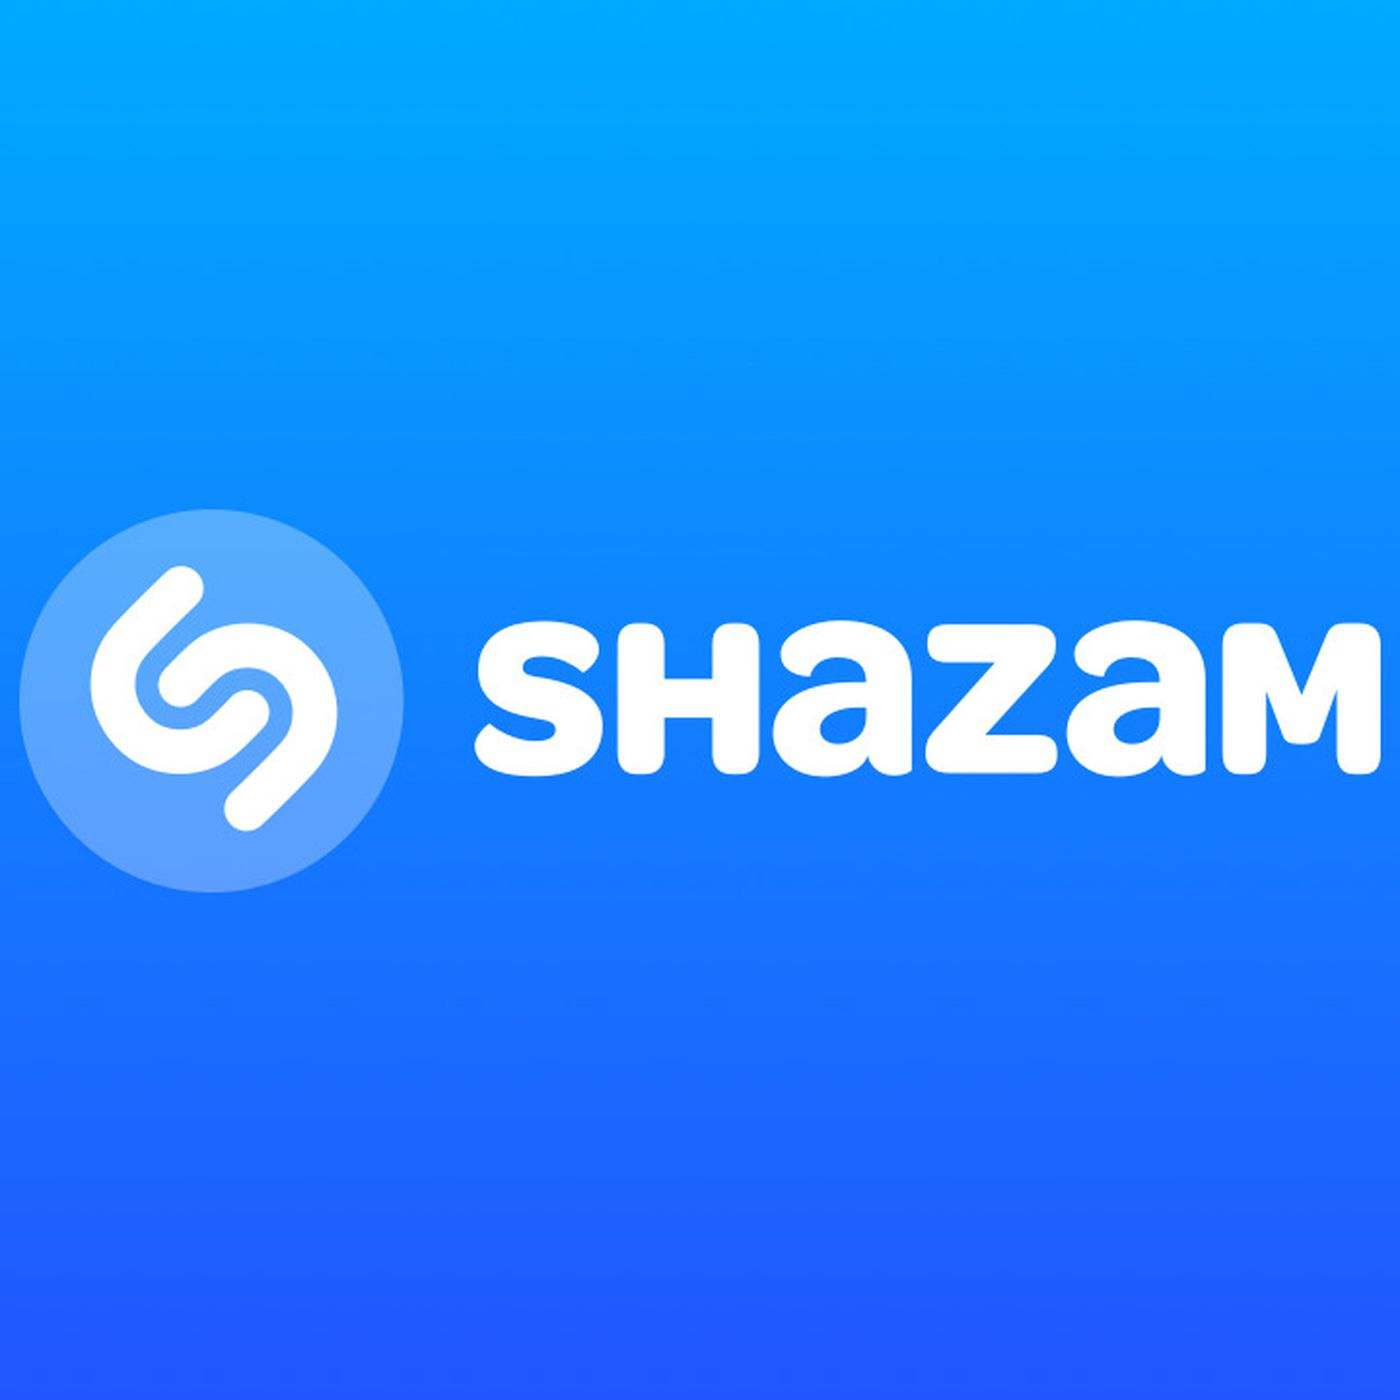 Shazam can now identify songs playing through your